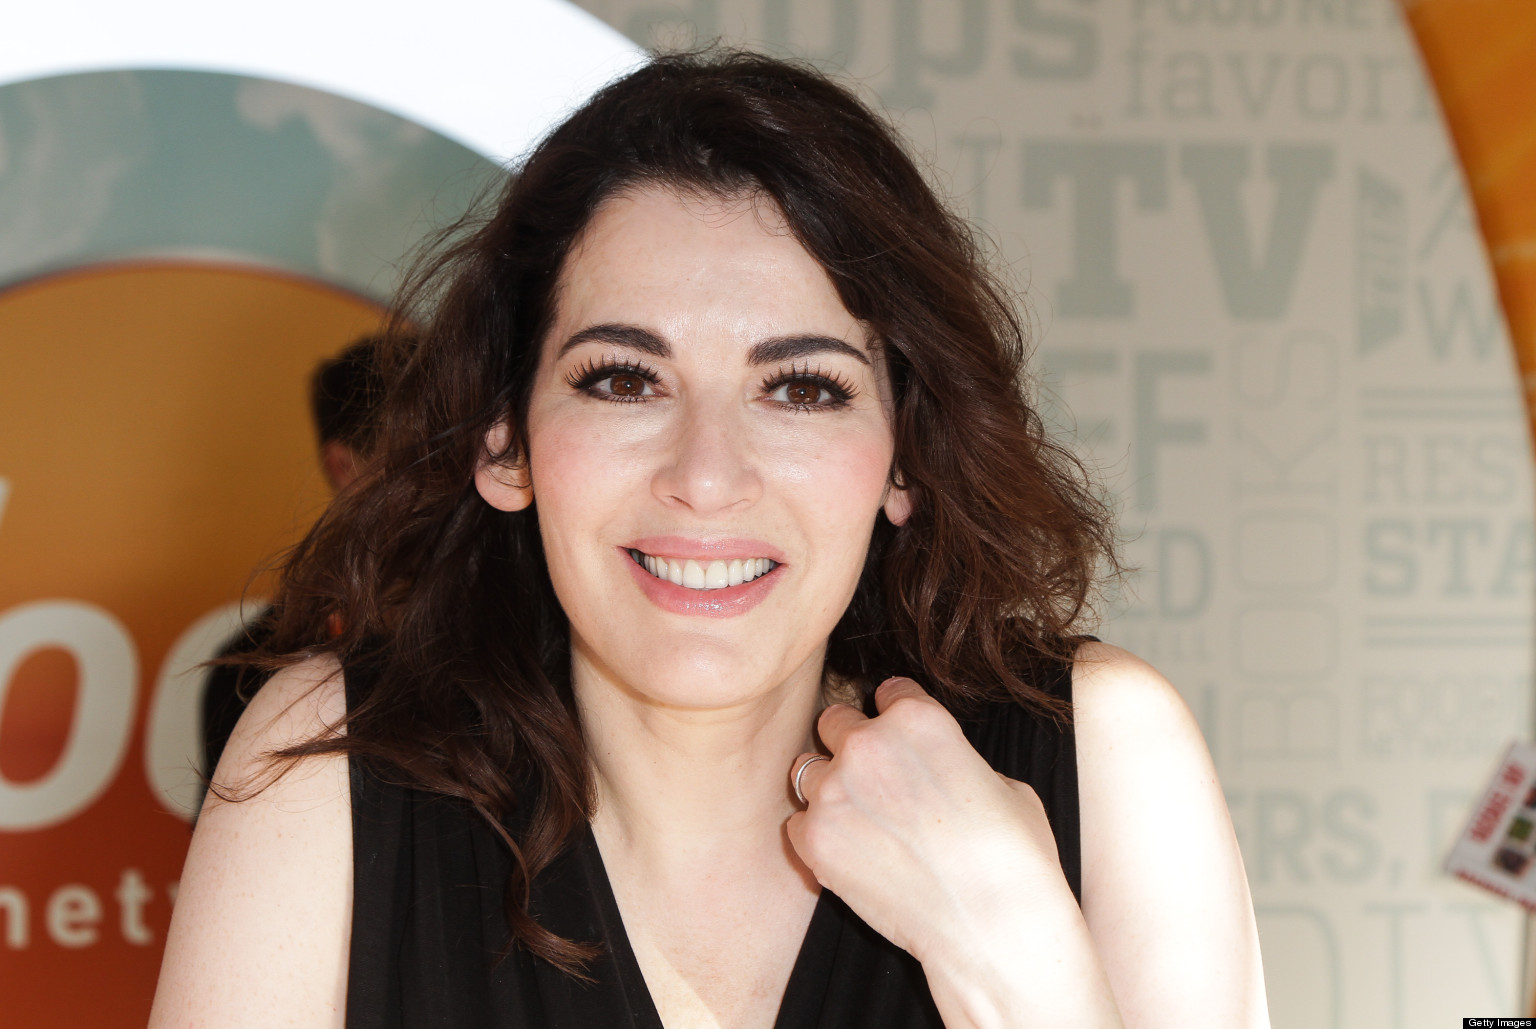 Nigella Lawson: Life Lessons From The British Cookbook Author